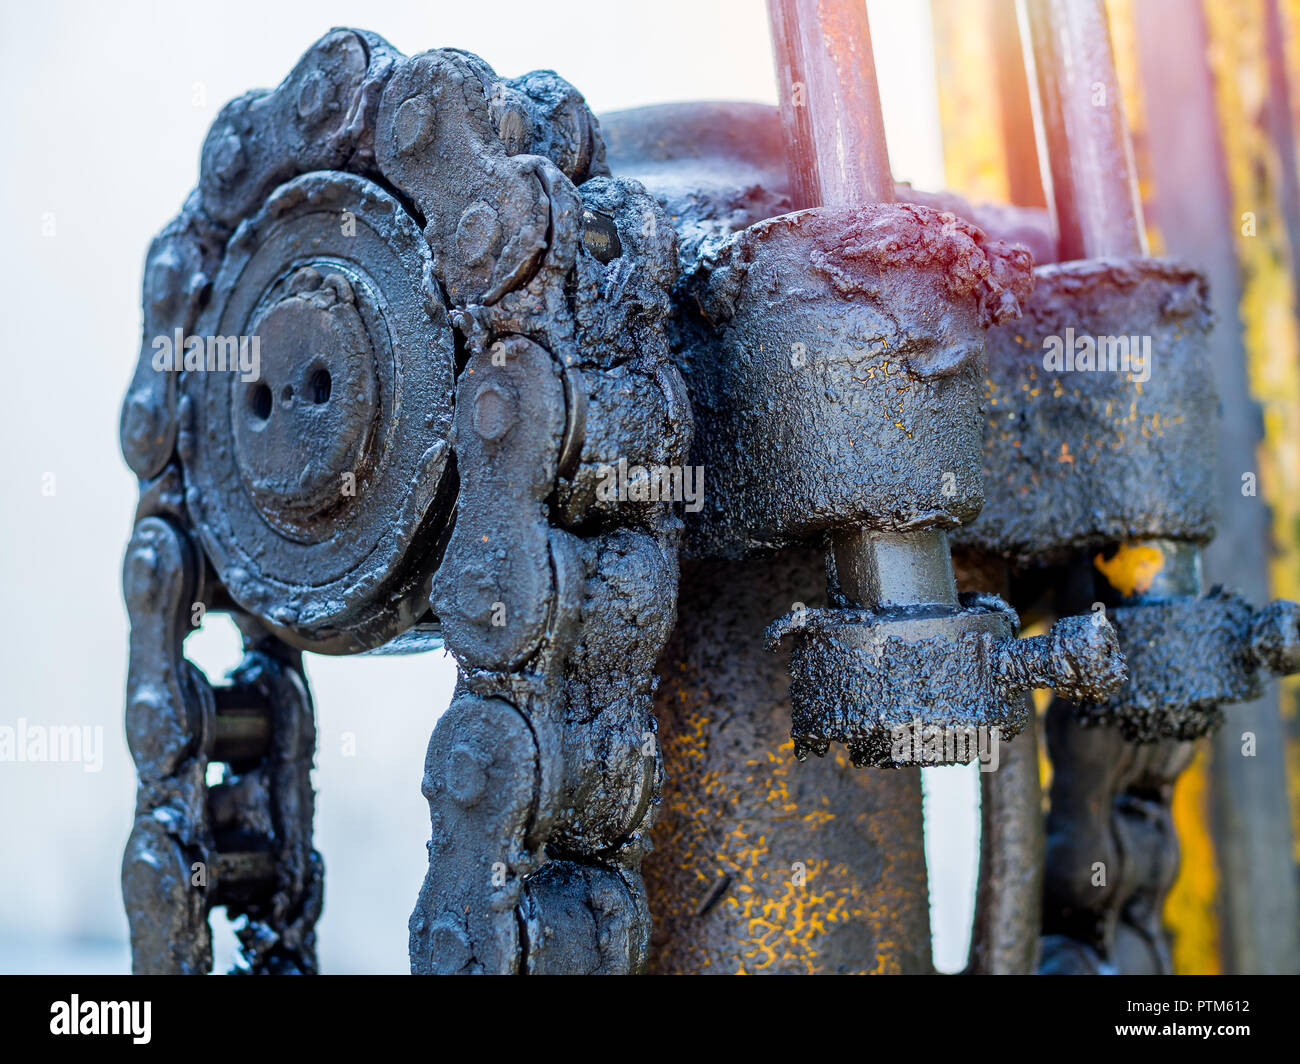 Close-up dirty and greasy chain of old forklifts with engine oil and